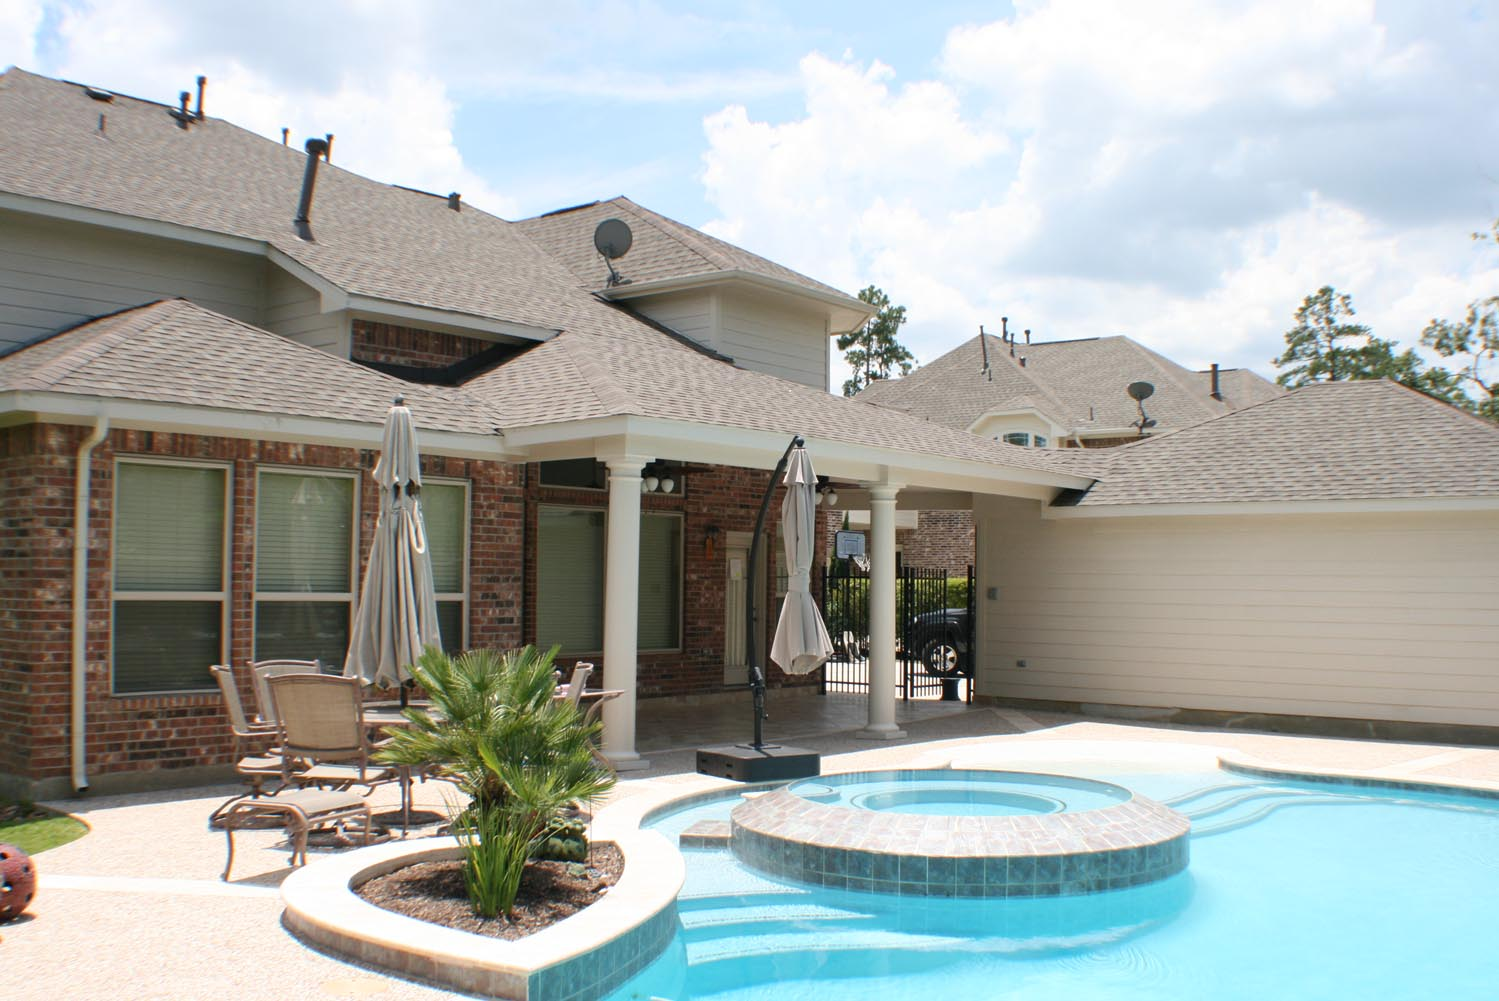 Patio Cover with Natural Stone Floor In Houston Texas